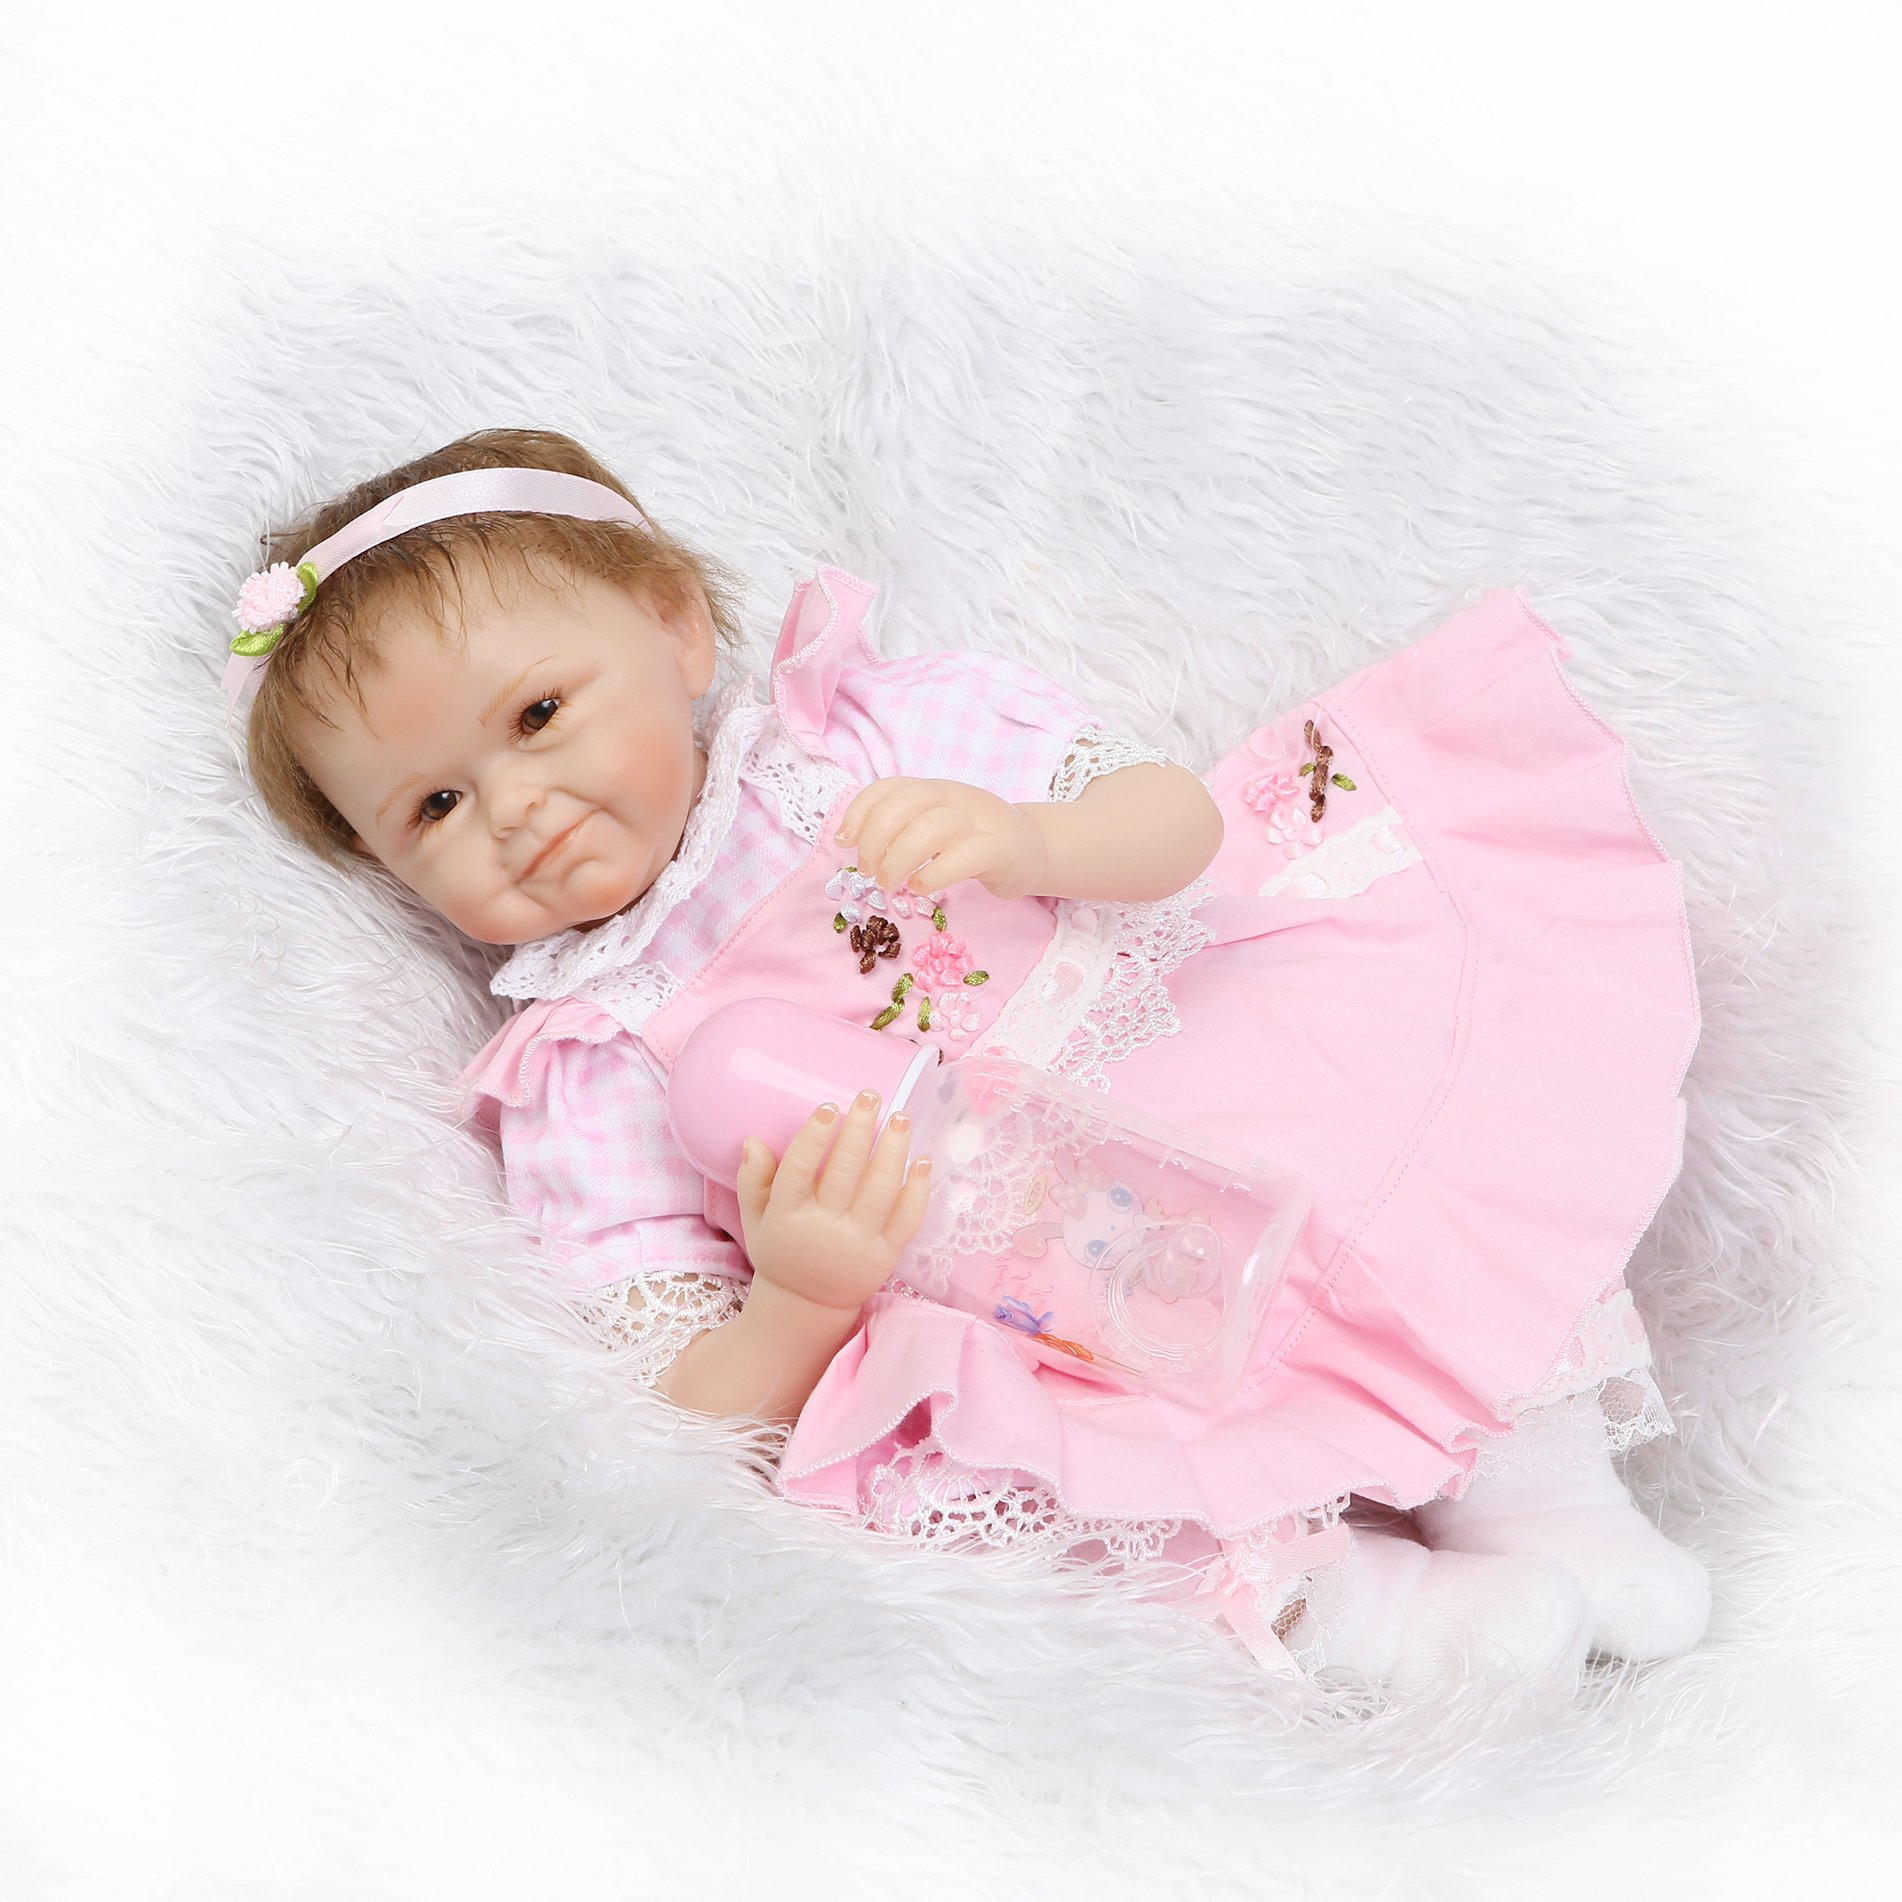 Pursue Baby Soft Body Vinyl Limbs Lifelike Poseable Baby Girl Doll with Blue Eyes, 22 Inch Realistic Weighted Newborn Baby Doll with Matching Outfits